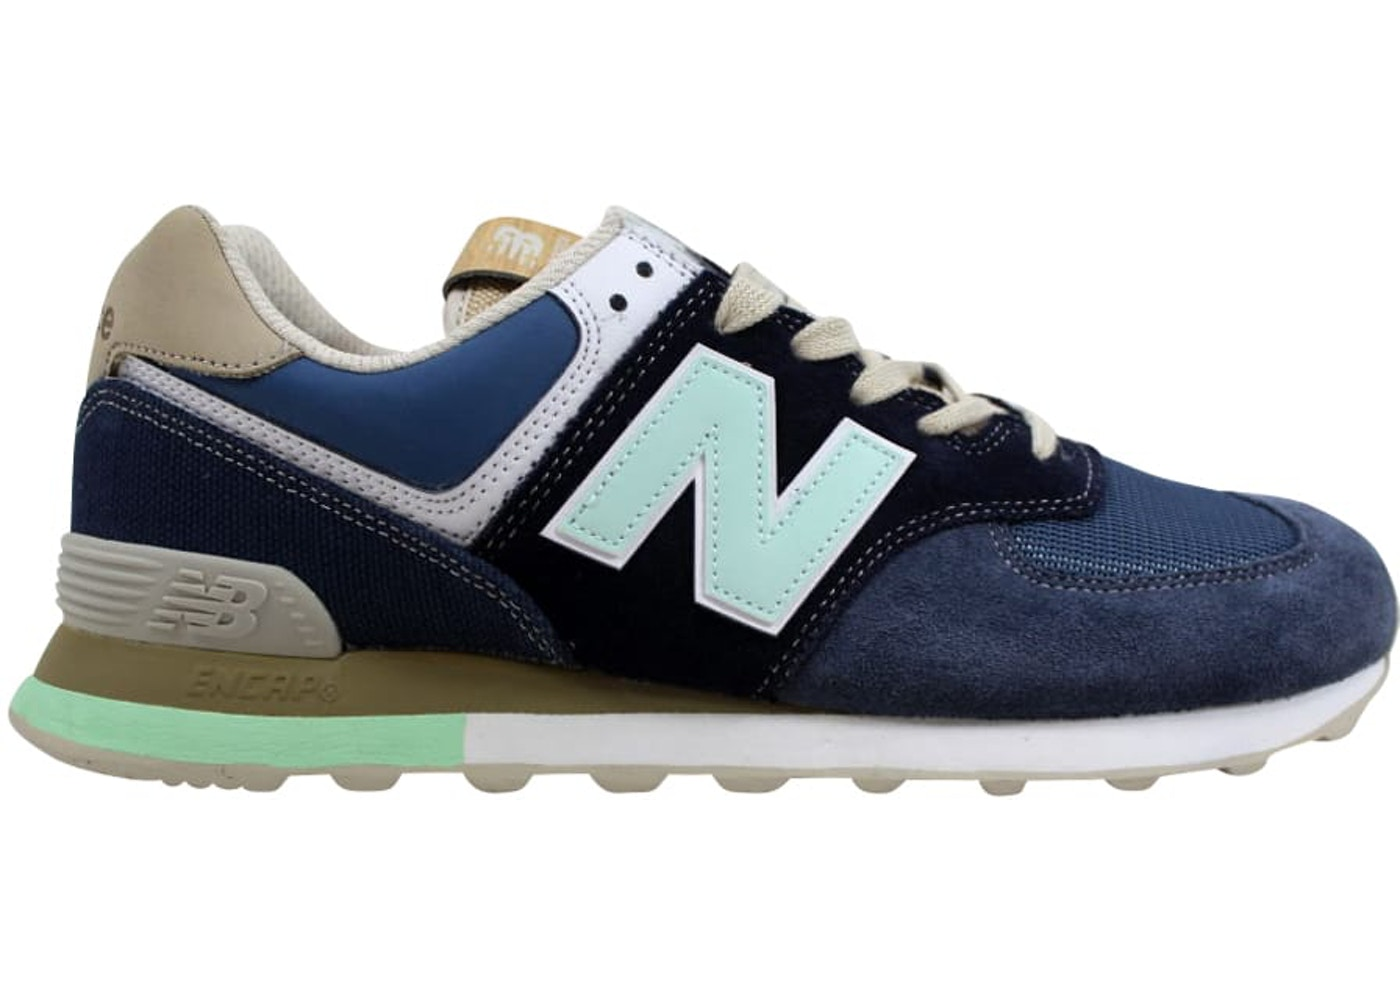 buy online d5836 a52ca Buy New Balance Size 15 Shoes & Deadstock Sneakers